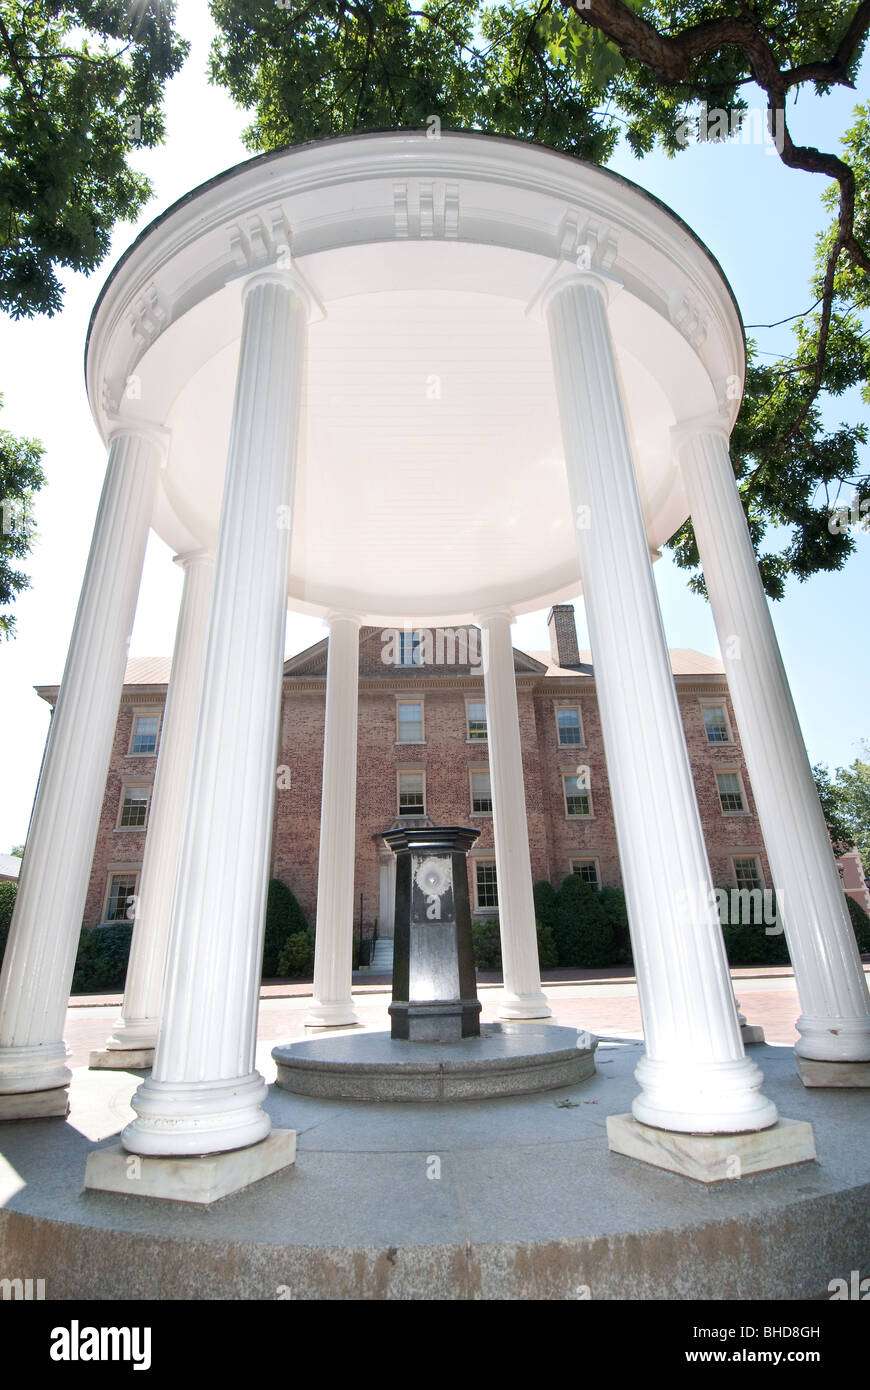 The old well the unofficial symbol of the university of north the old well the unofficial symbol of the university of north carolina in chapel hill north carolina buycottarizona